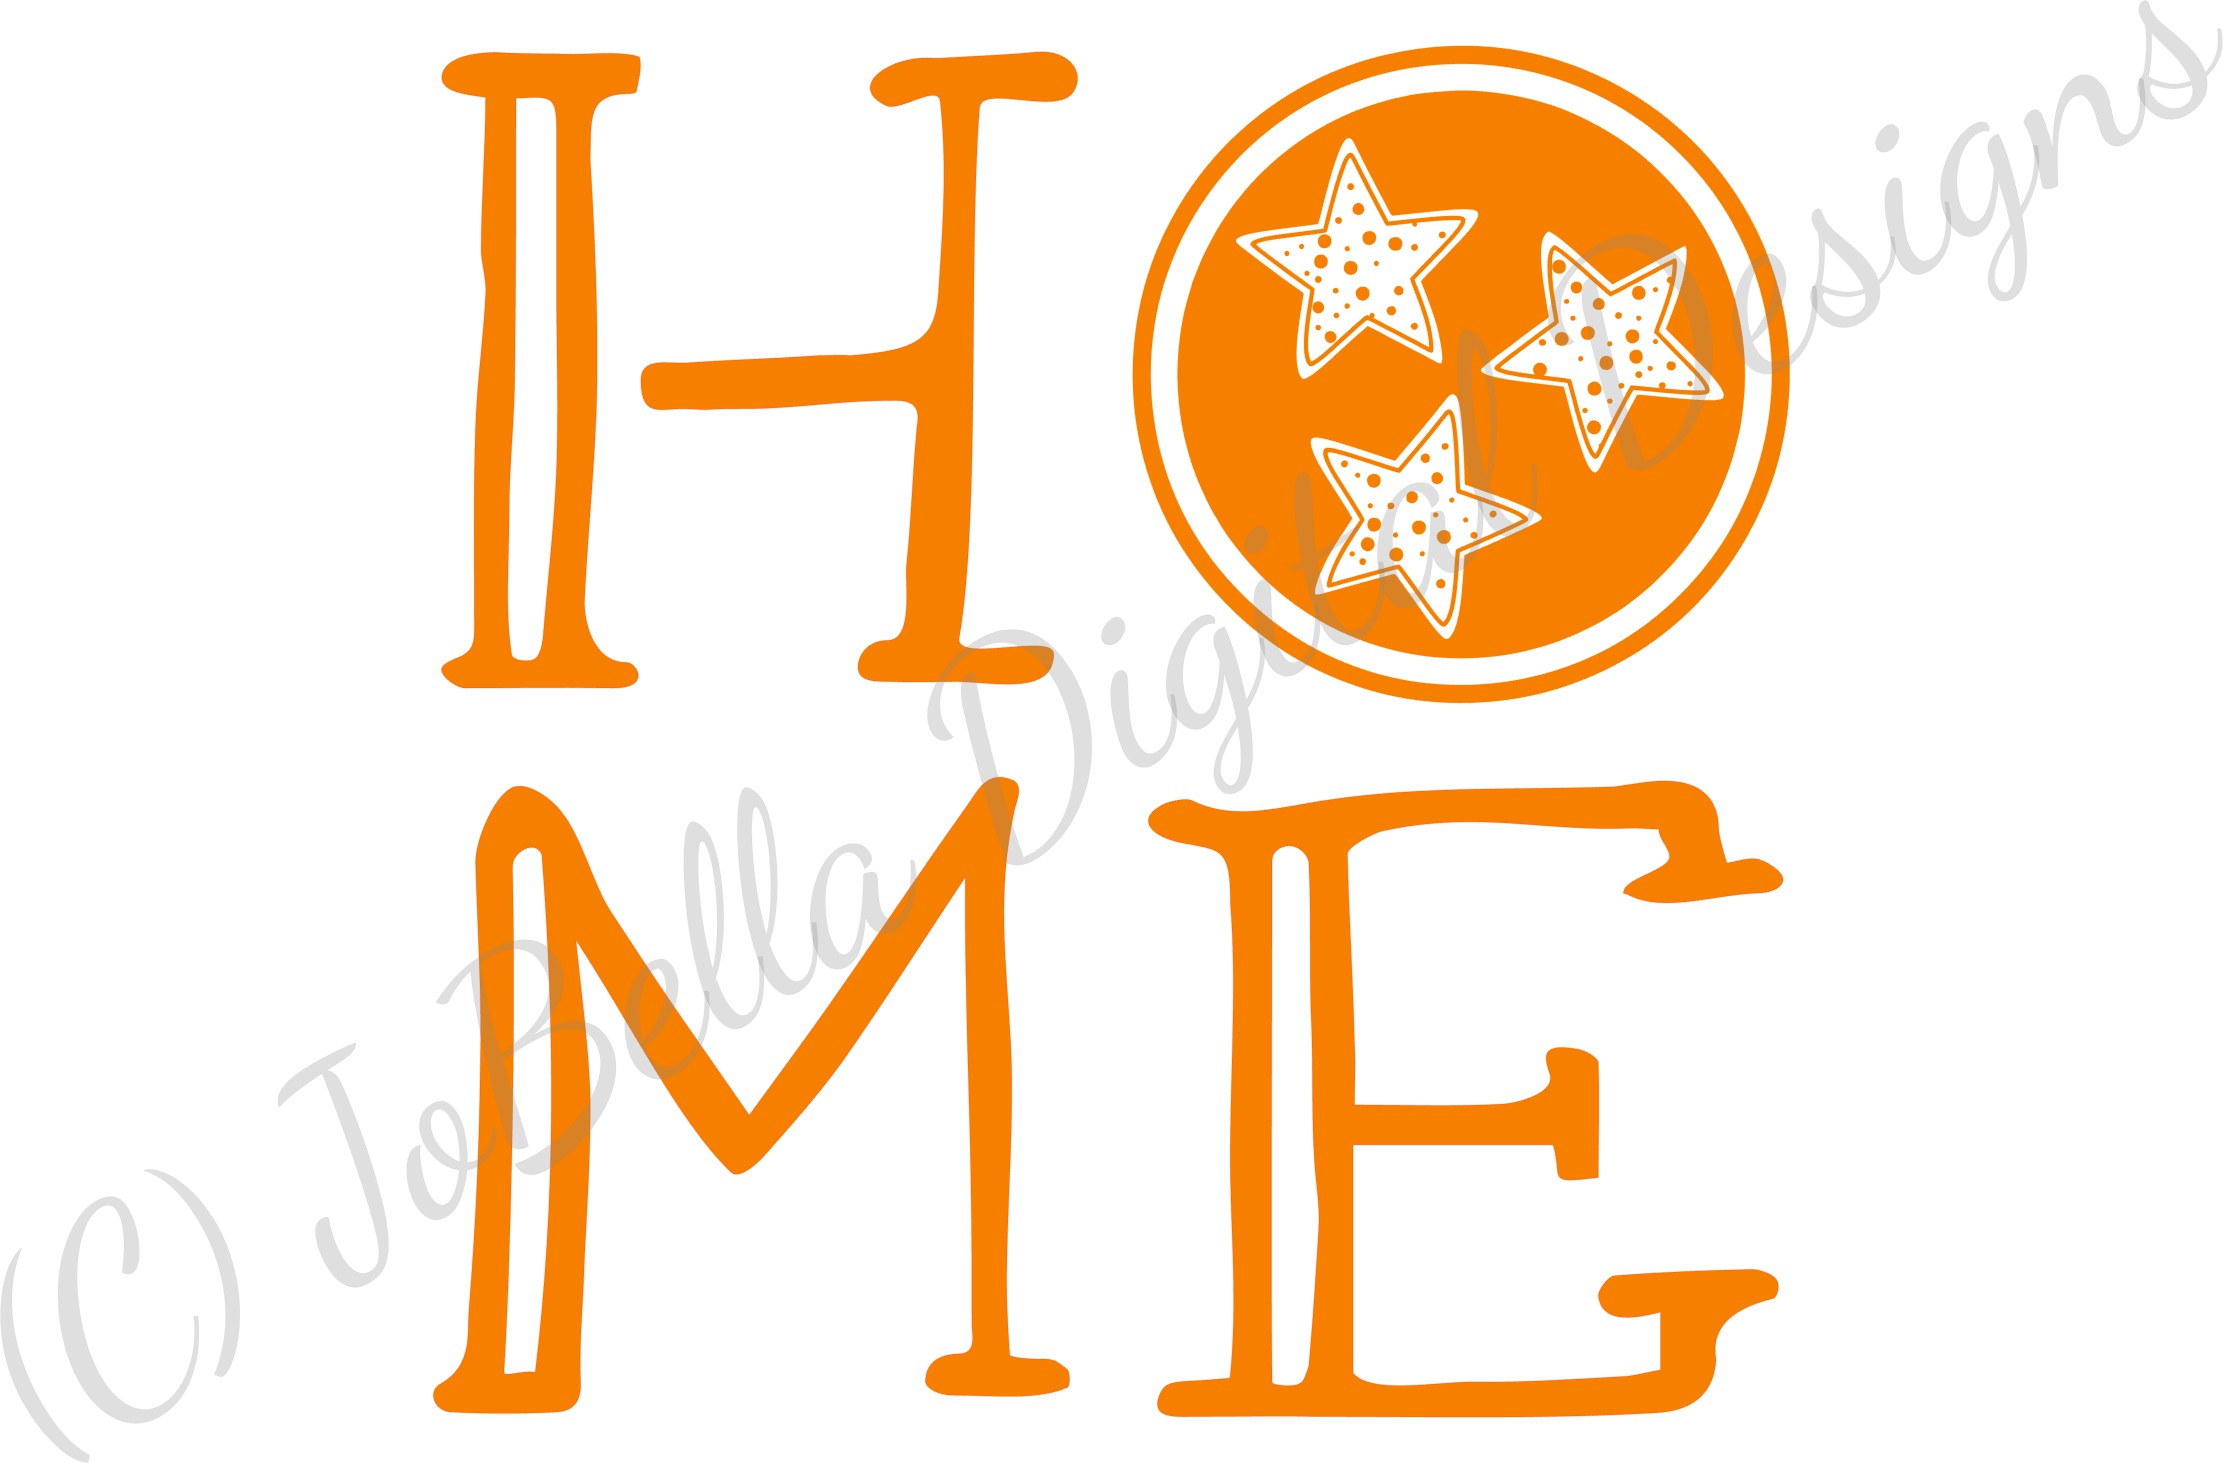 Home with Polka Dot TriStar SVG, Sublimation PNG & Printable example image 4